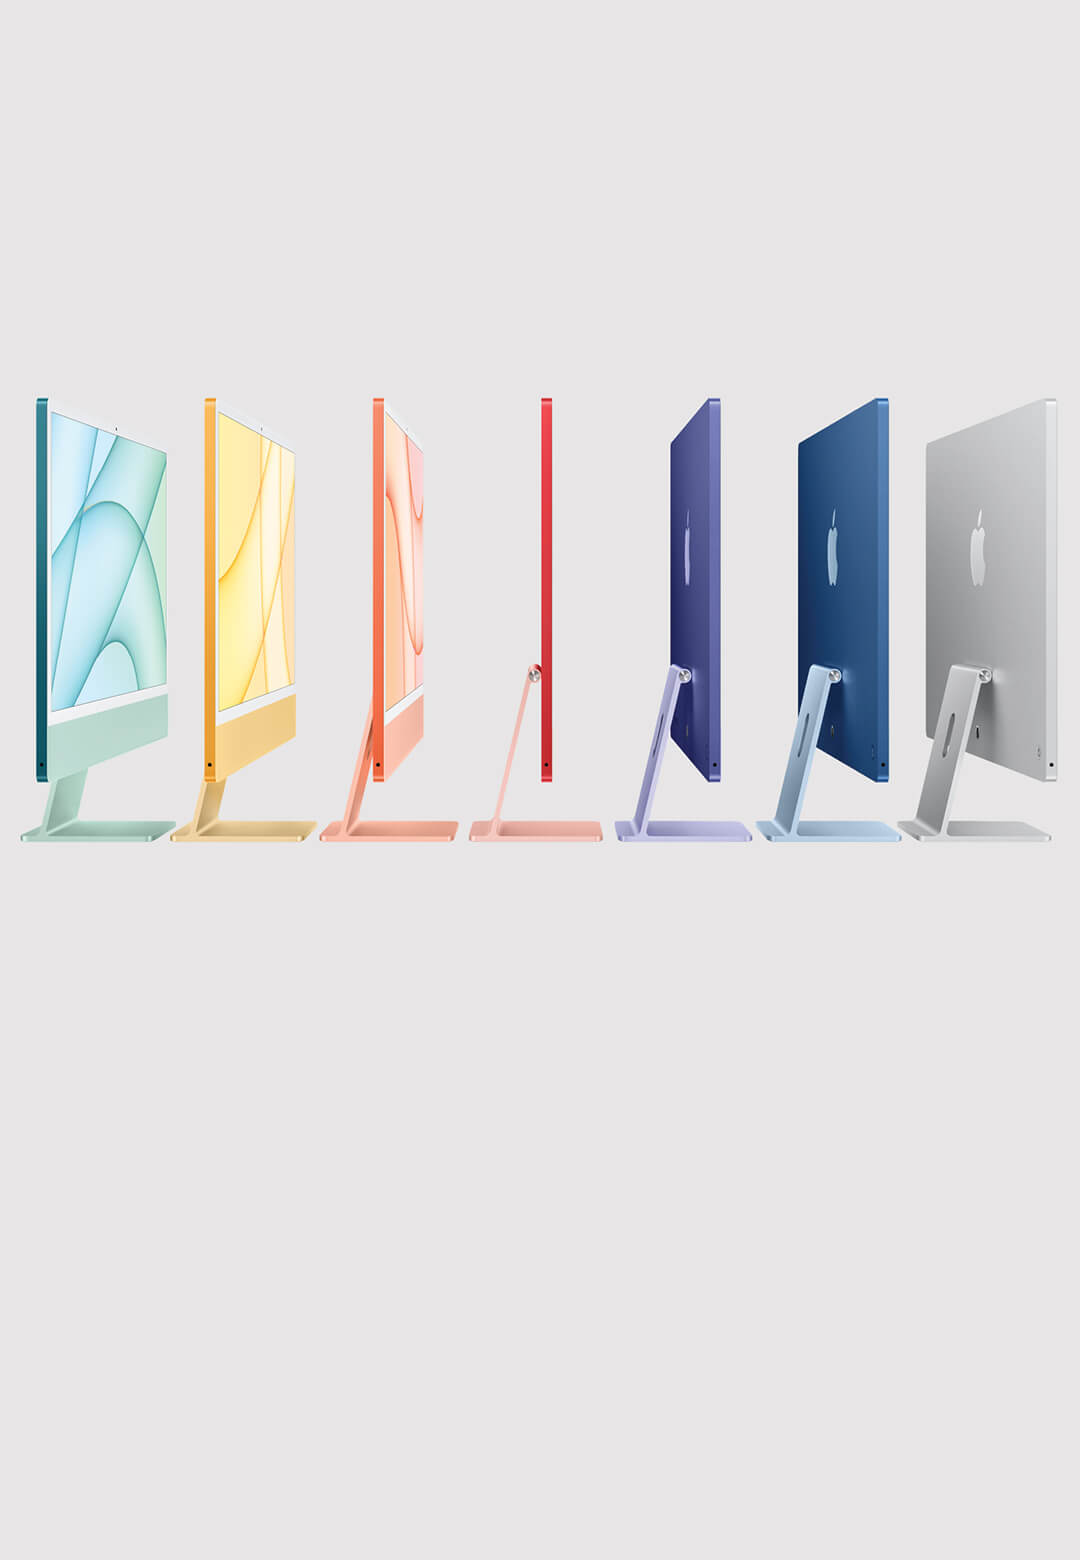 Apple unveils new version of the iMac in a spectrum of vibrant colours | All new iMac by Apple Inc. | STIRworld